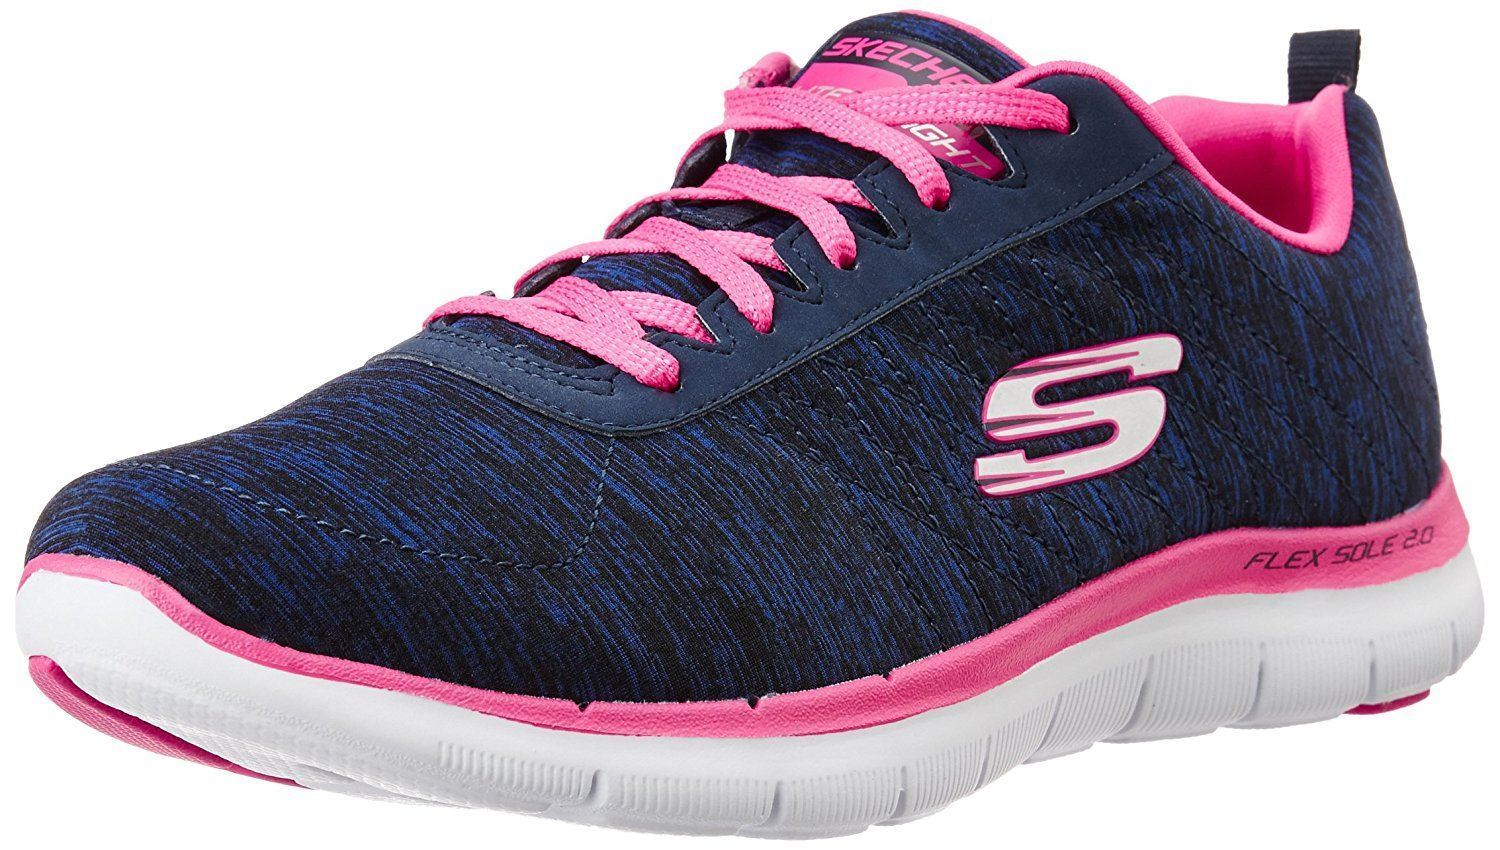 0415950415 Skechers Flex Appeal 2.0 Navy Pink Womens Trainers Shoes Quick View